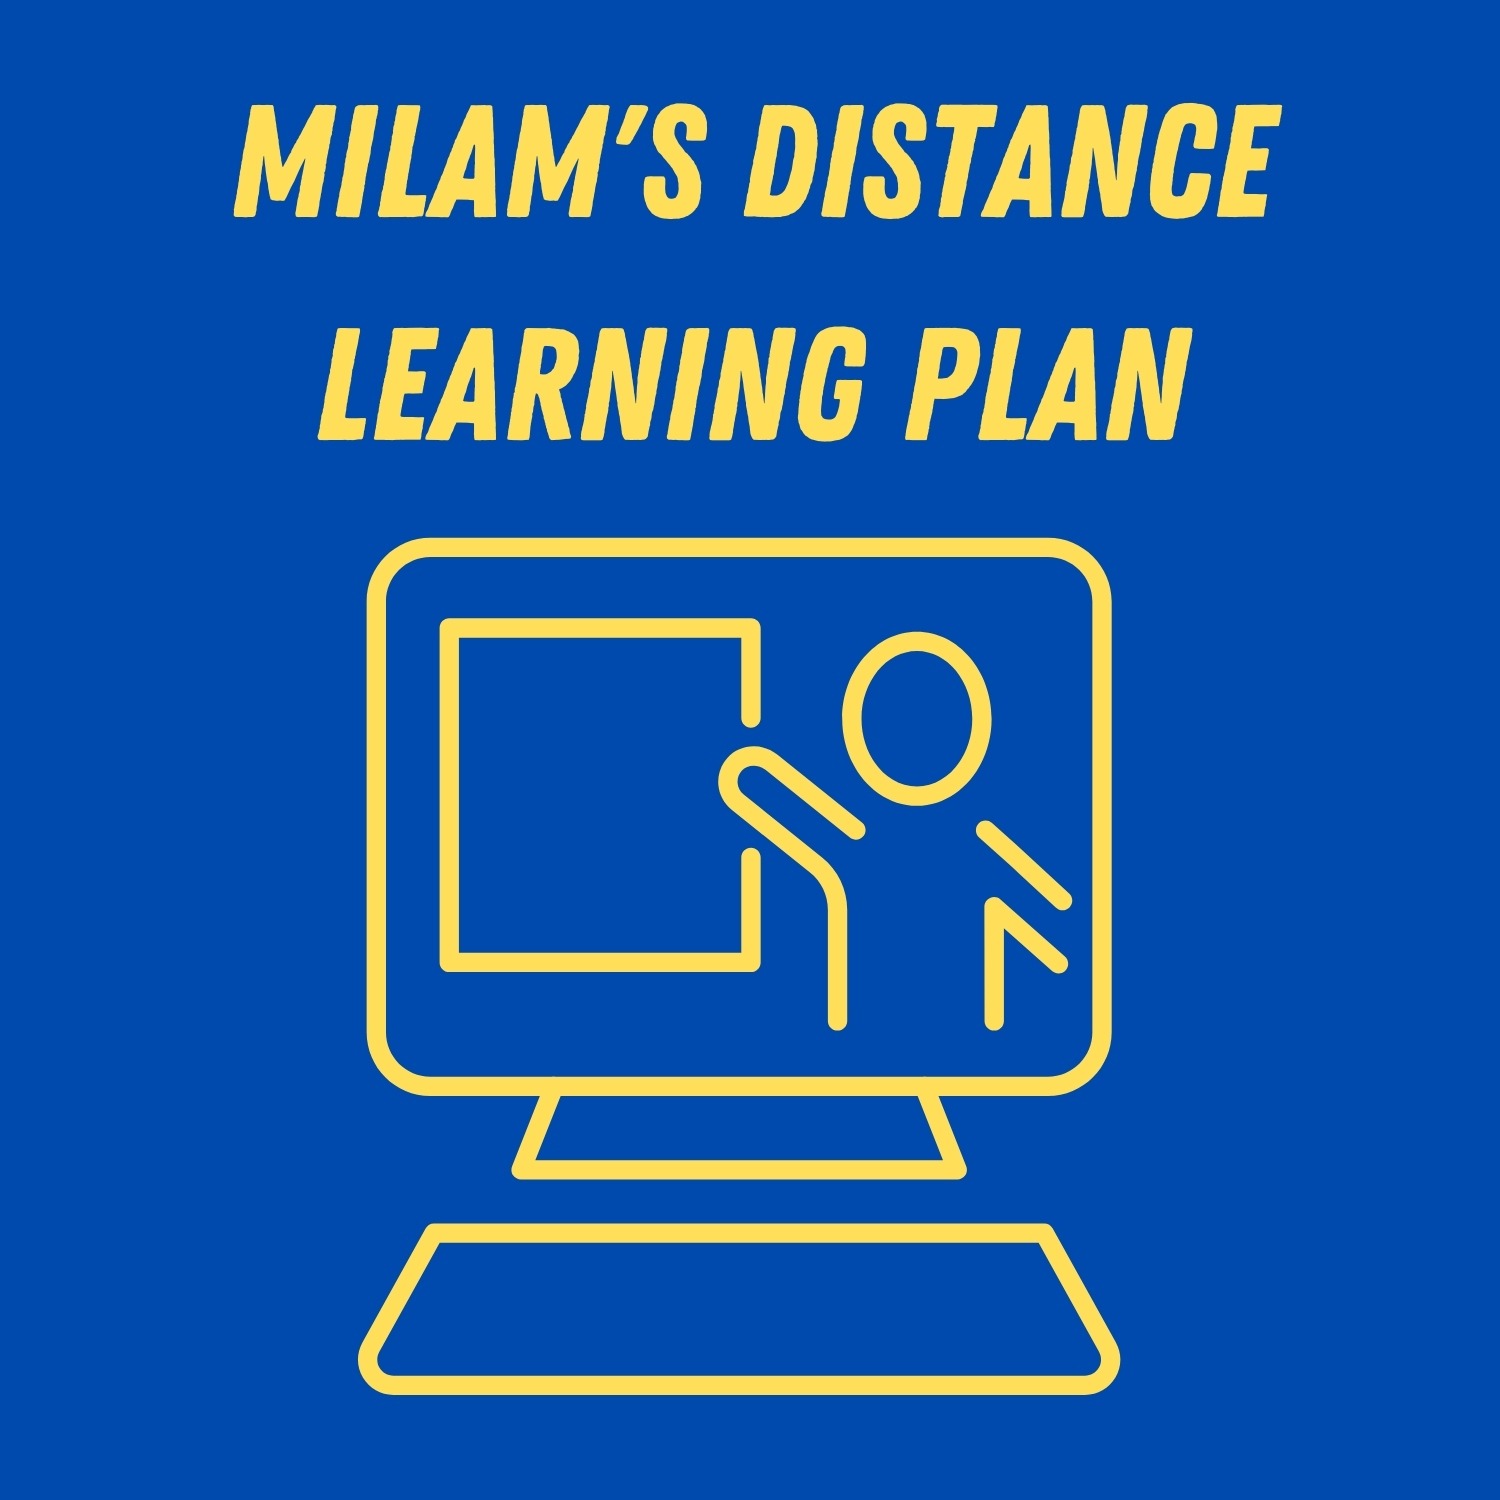 Milam's Distance Learning Plan